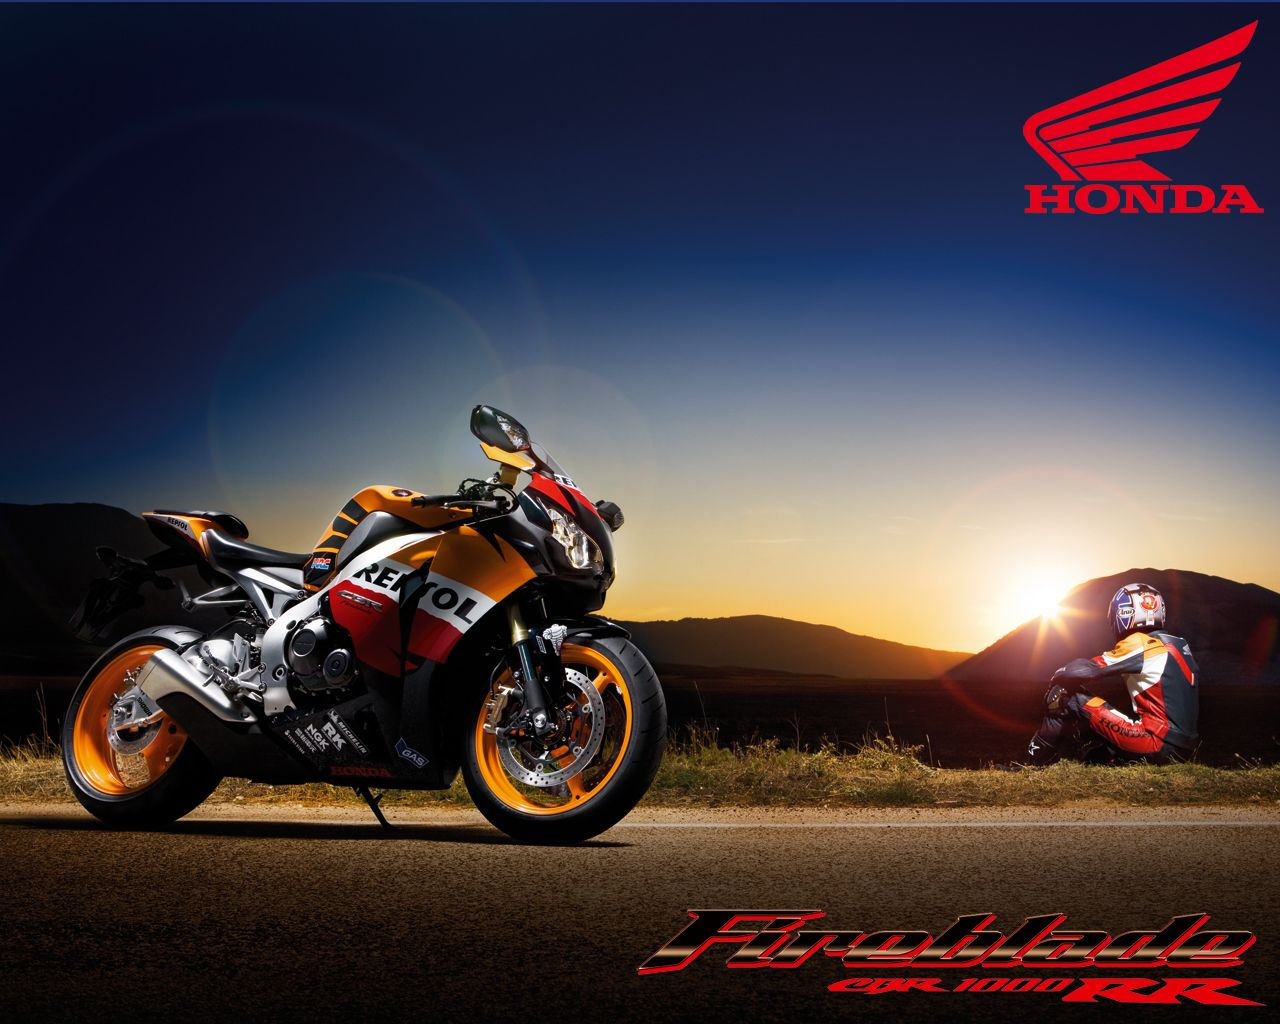 Honda Repsol Wallpaper Motorcycle: Repsol Honda Cbr Motogp On Sunset In Montain Wallpaper